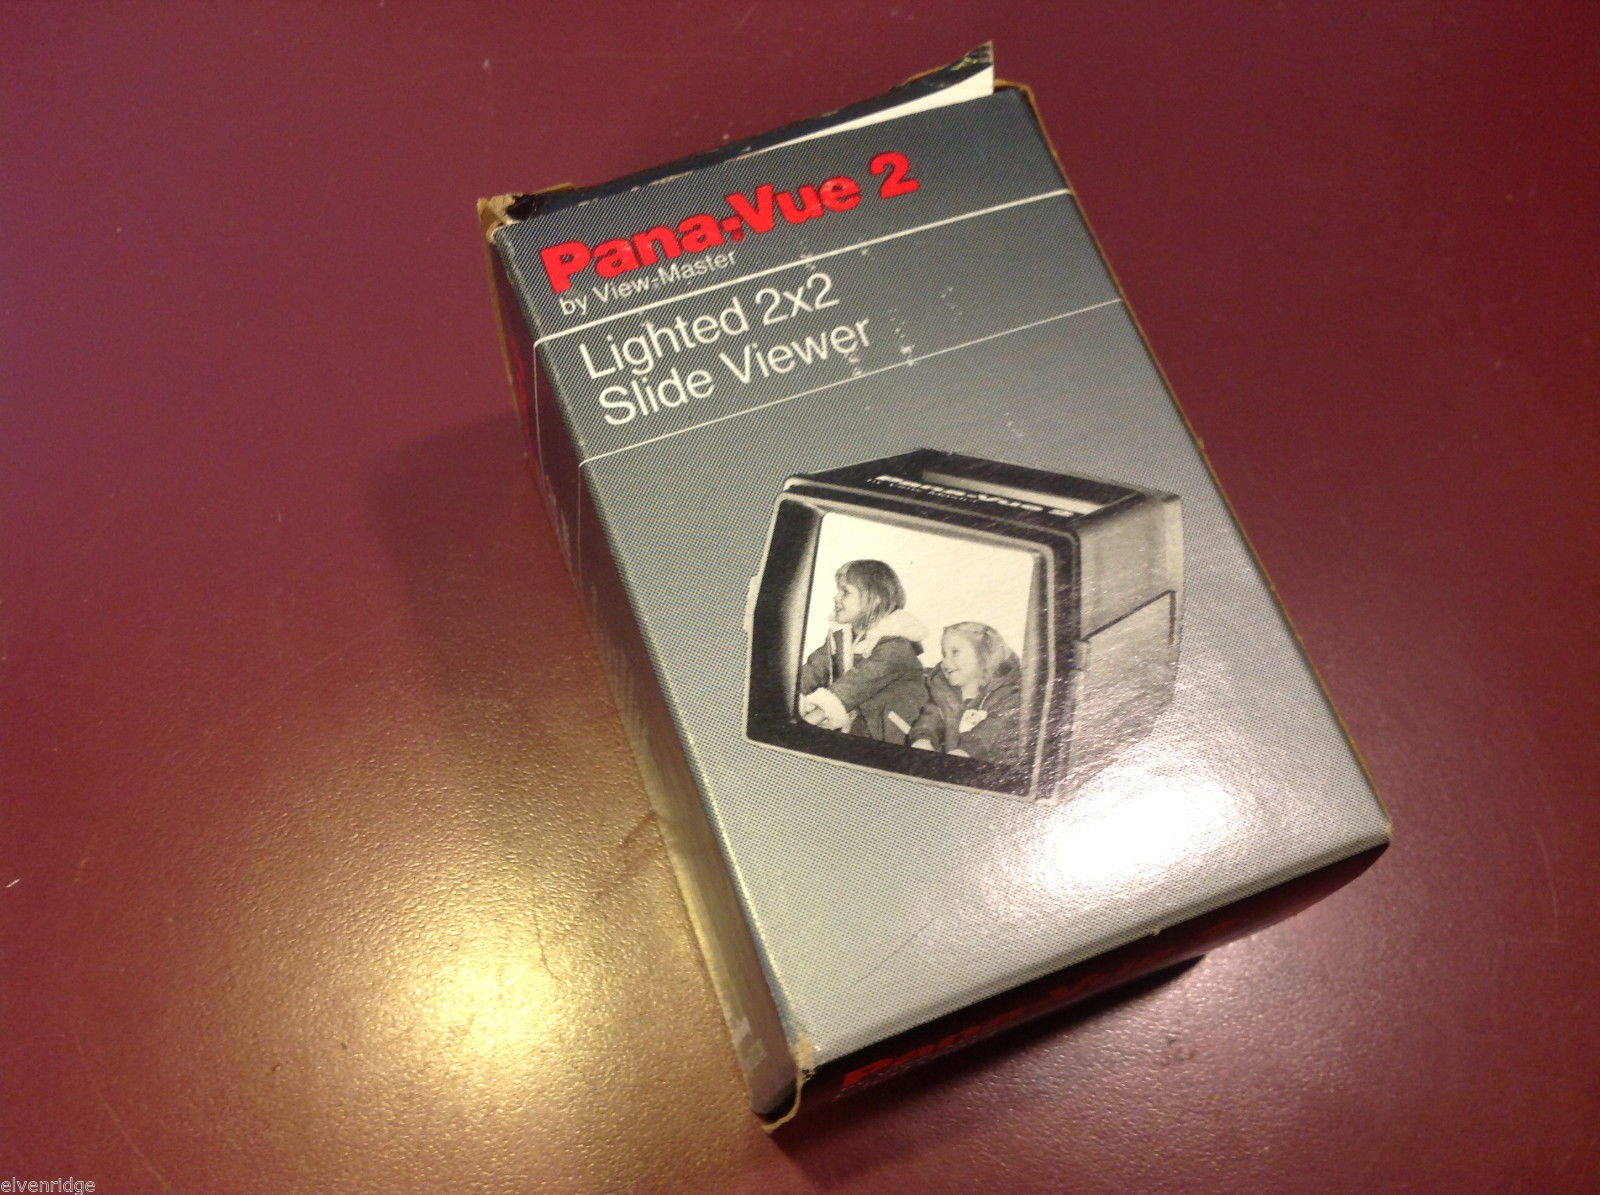 Pana Vue 2 in box with literature